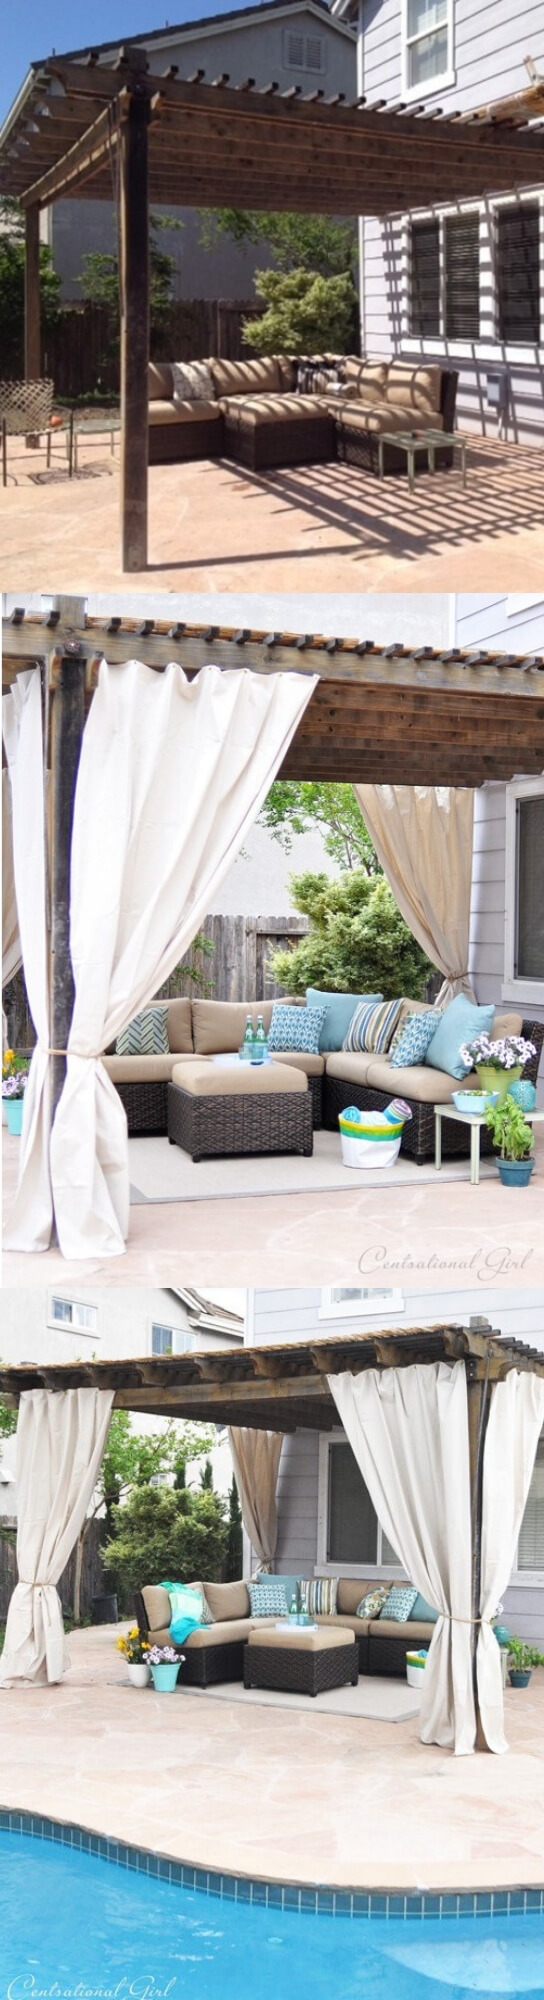 30 Stunning Outdoor Curtain Ideas Designs For 2021